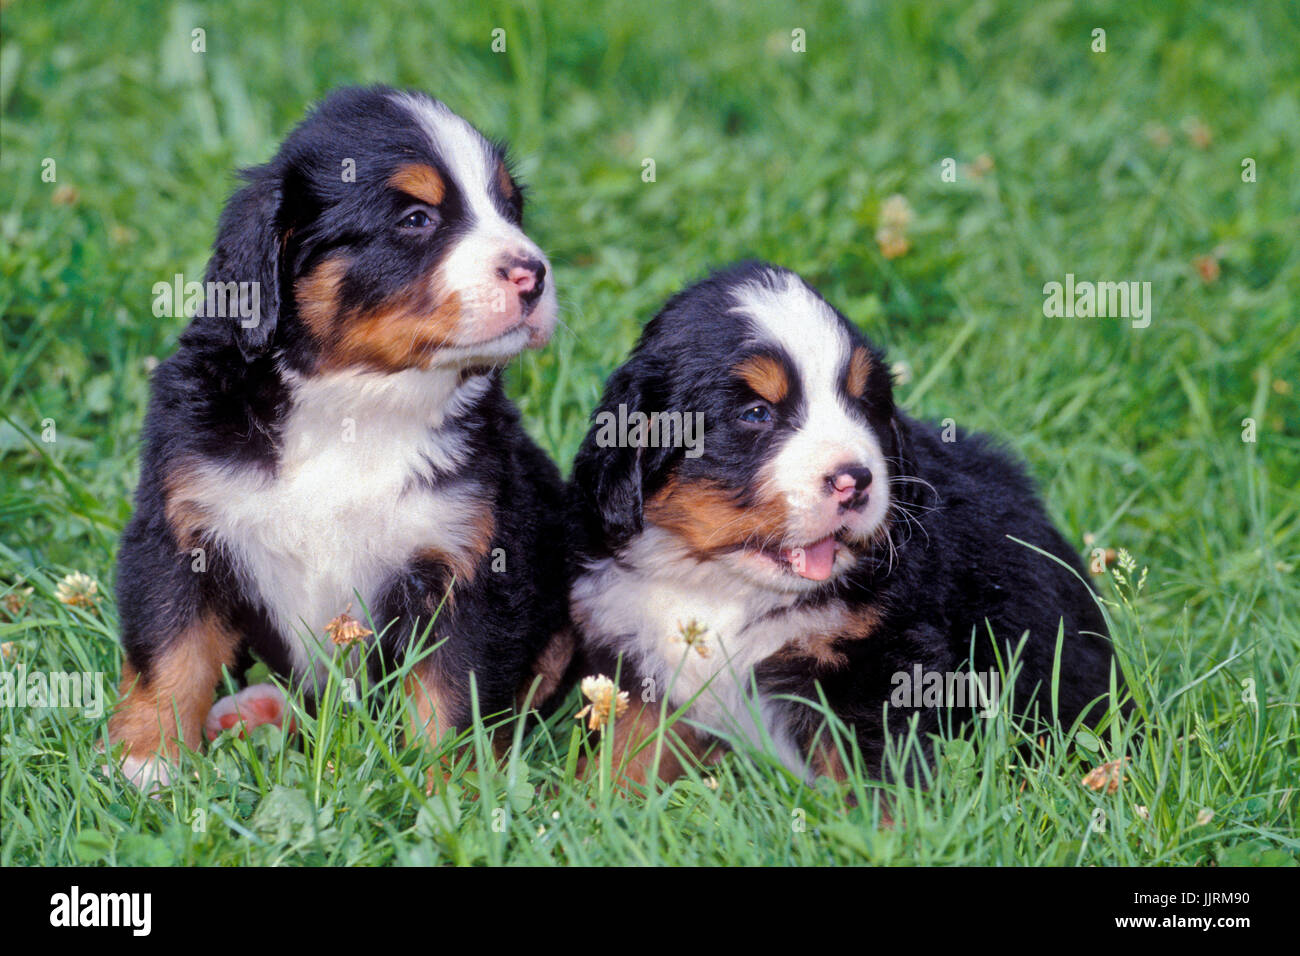 Bernese Mountain Dog, two puppies sitting together in grass - Stock Image